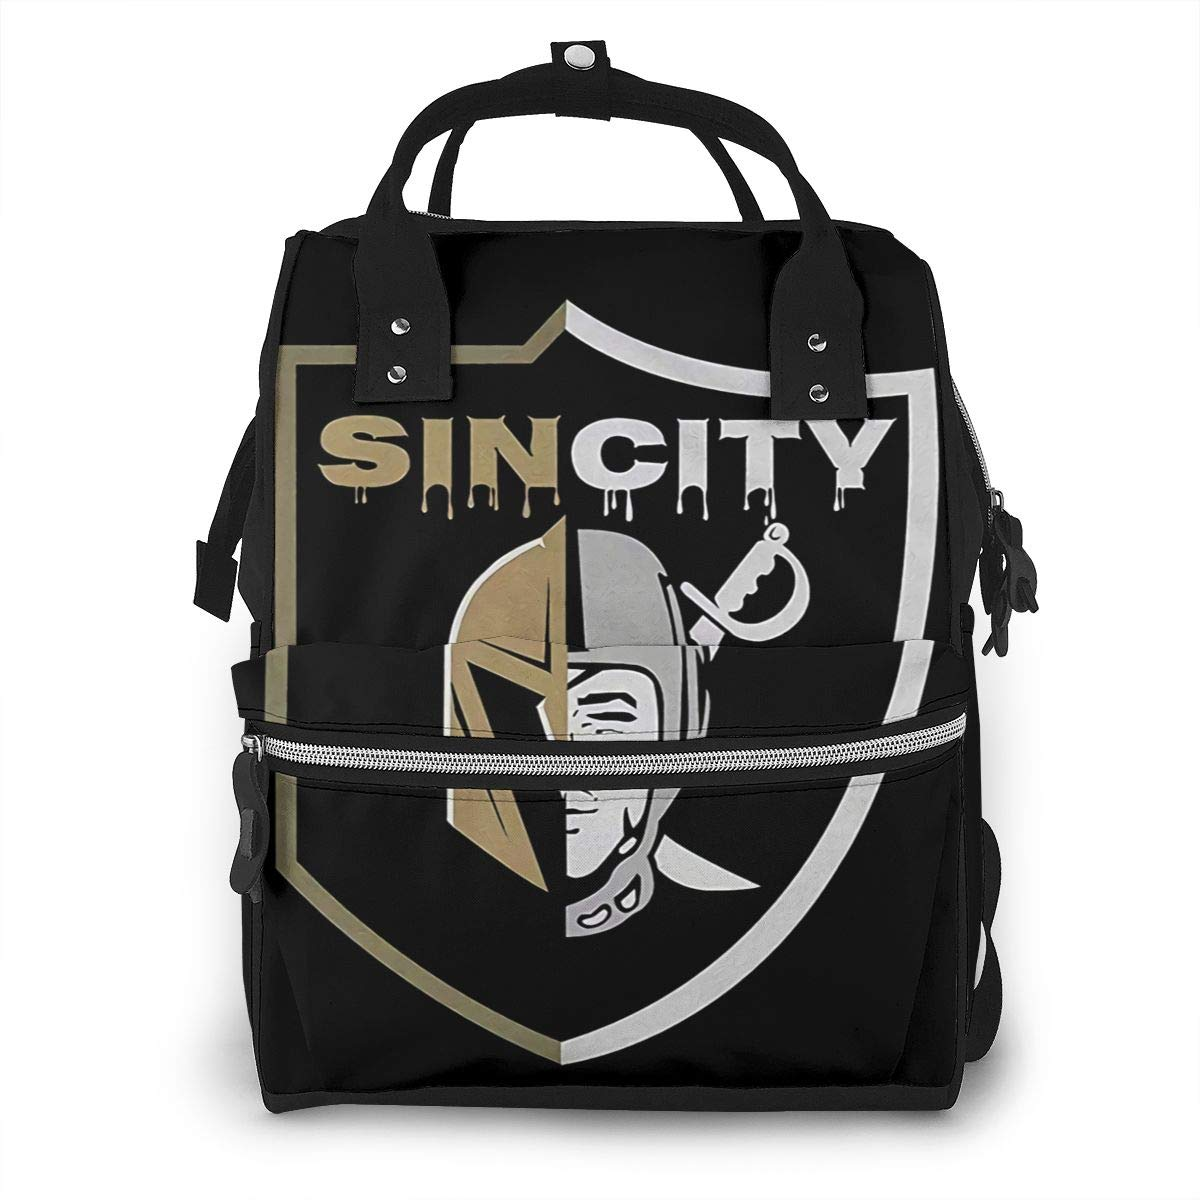 Sin City Las Vegas Raiders Golden Knights Fashionable Durable Large Capacity Diaper Bag Mommy Backpack